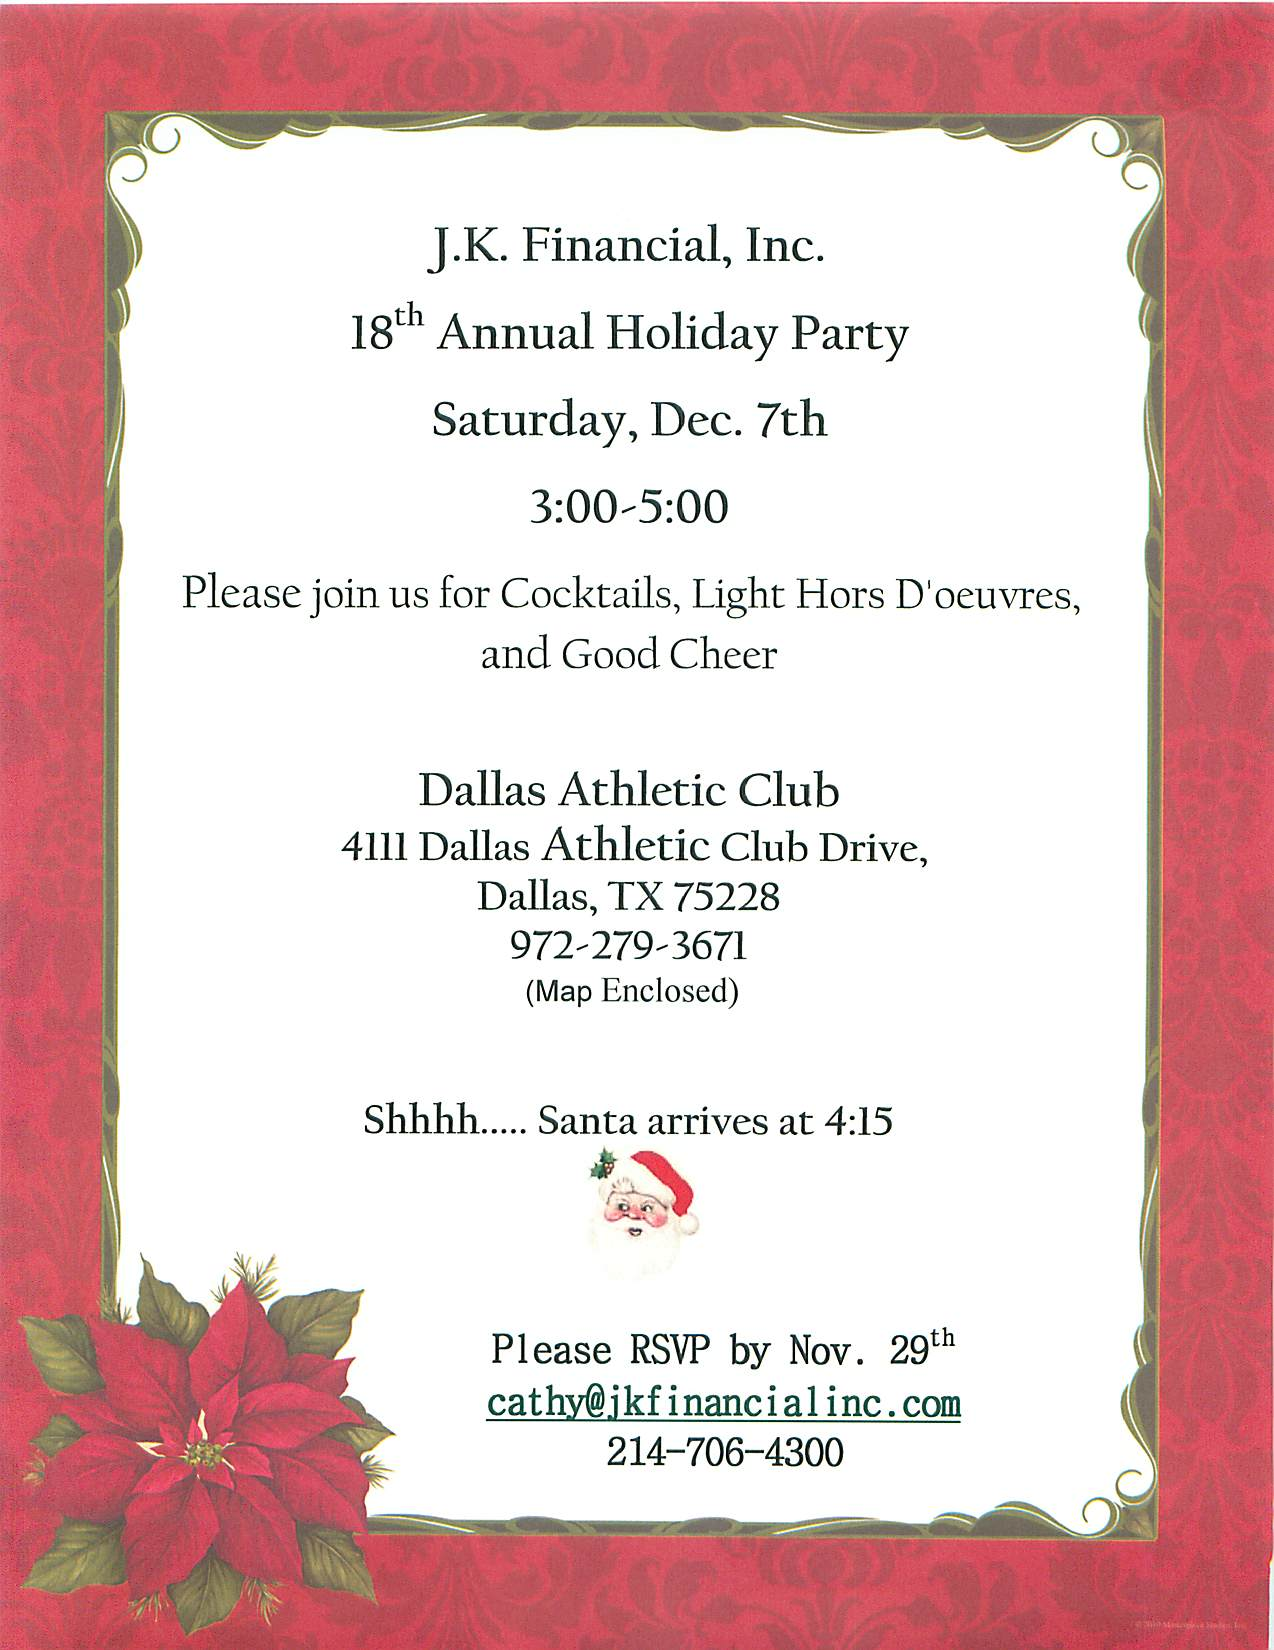 11-5-13 Xmas Invite and DAC directions_Page_1